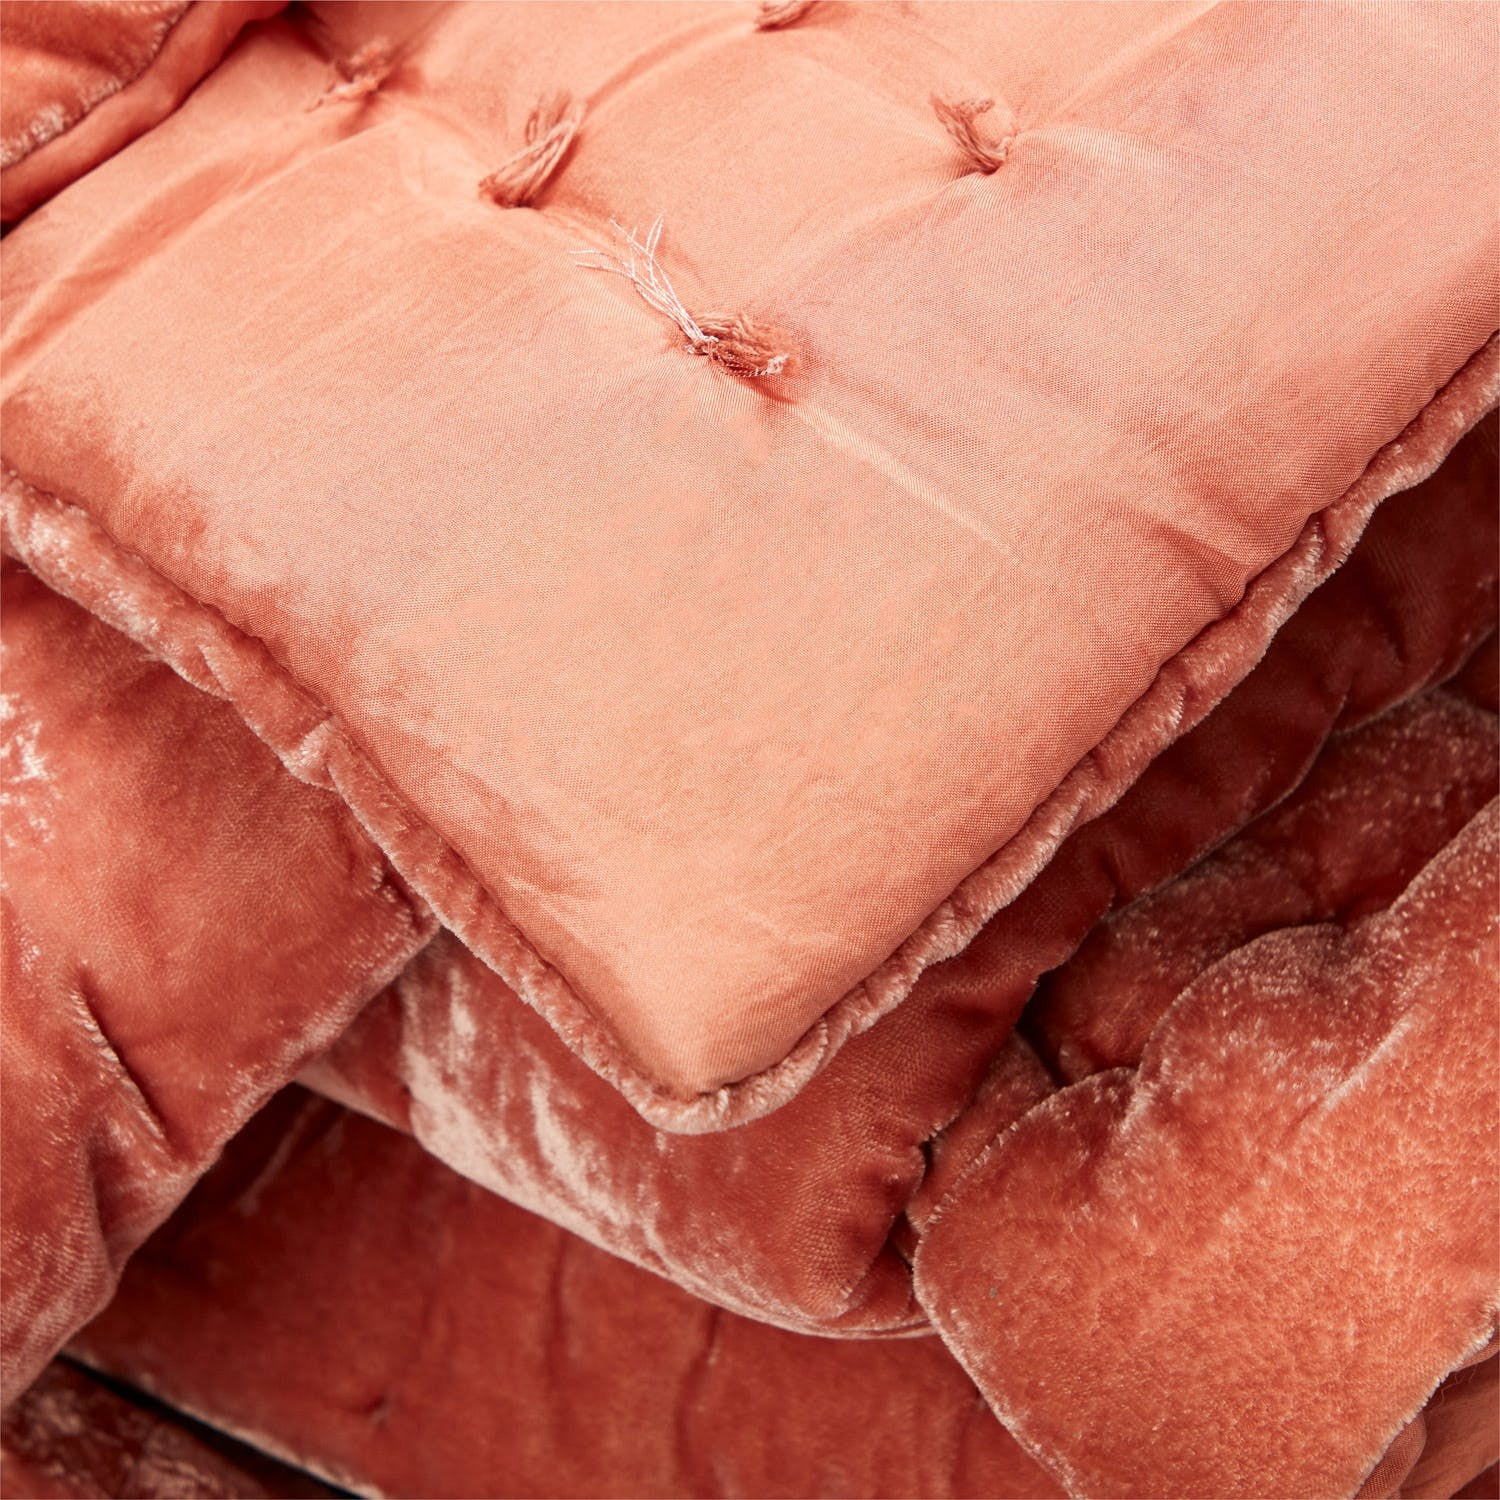 abcDNA Luminous Velvet Quilt King Terracotta